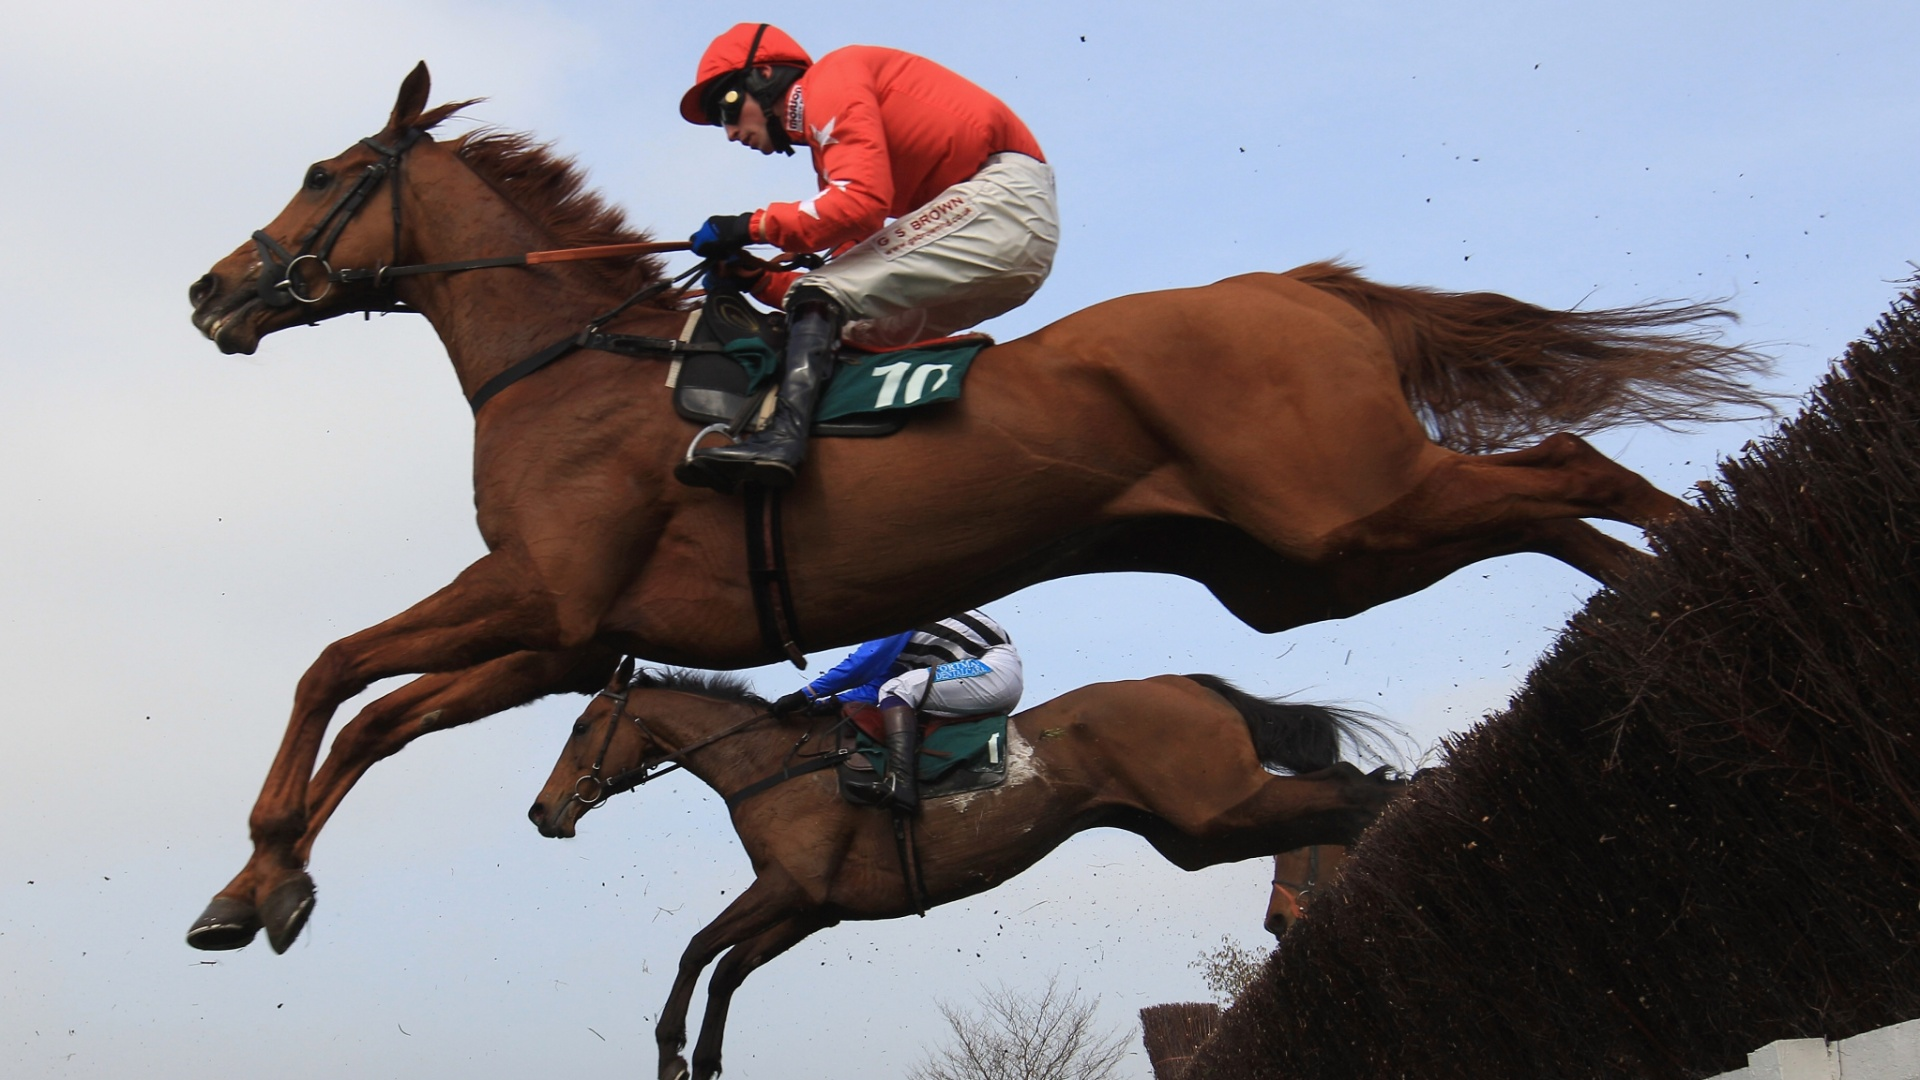 14.mar.2012 - Cavalo Harry The Viking, de propriedade do treinador do Manchester United, Alex Ferguson, compete na Diamond Jubilee National Hunt, na Inglaterra